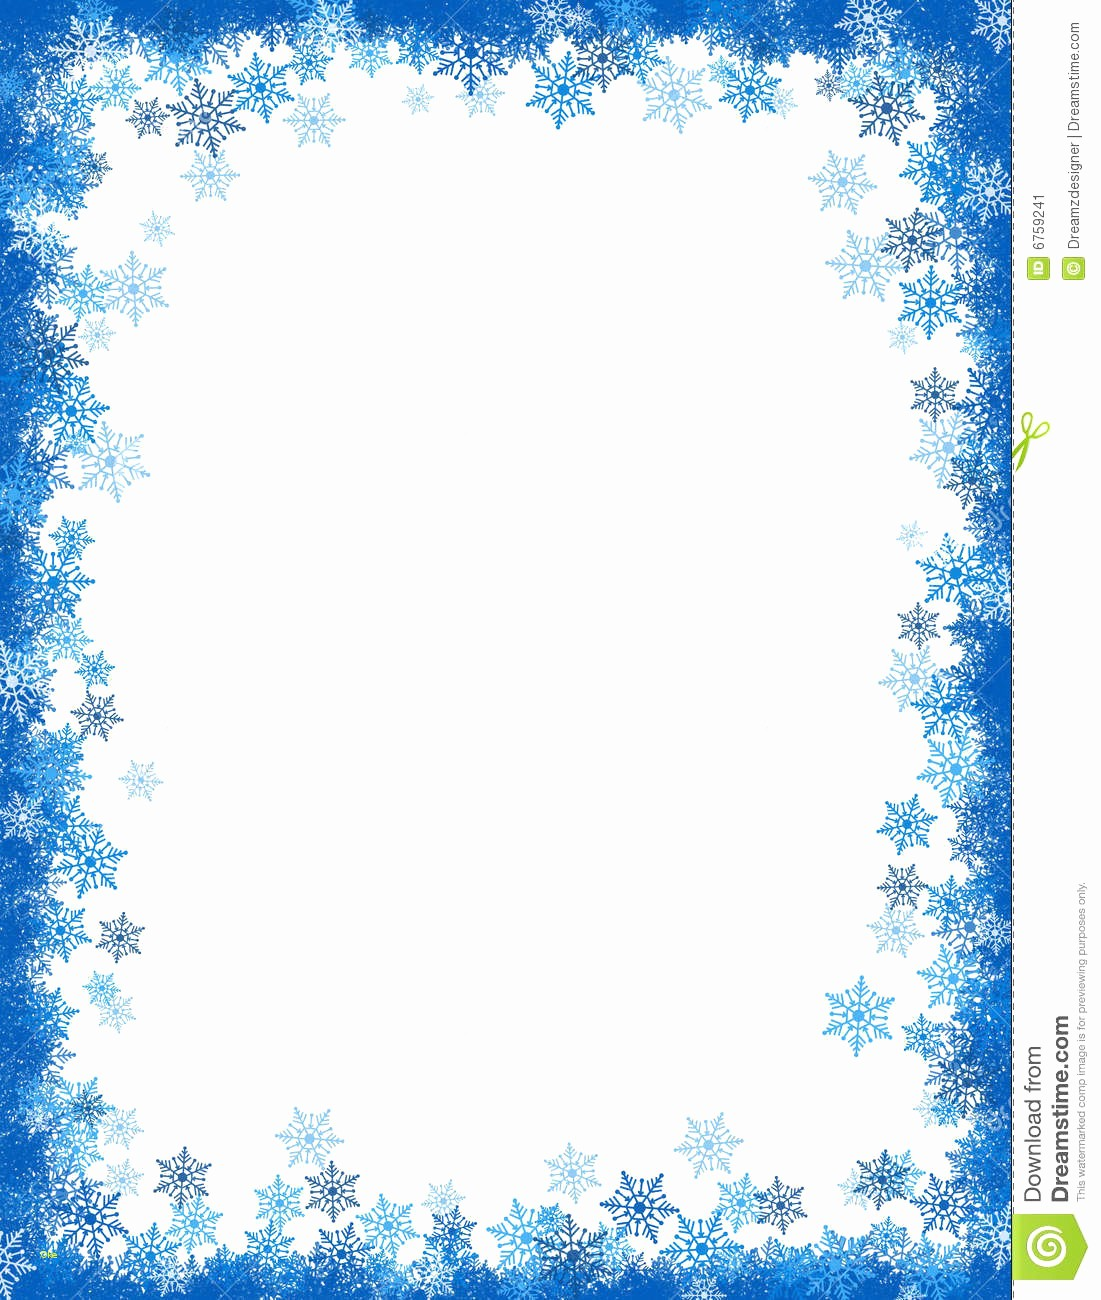 Christmas Background Images for Word Lovely Word Background Templates Best Christmas Borders Word